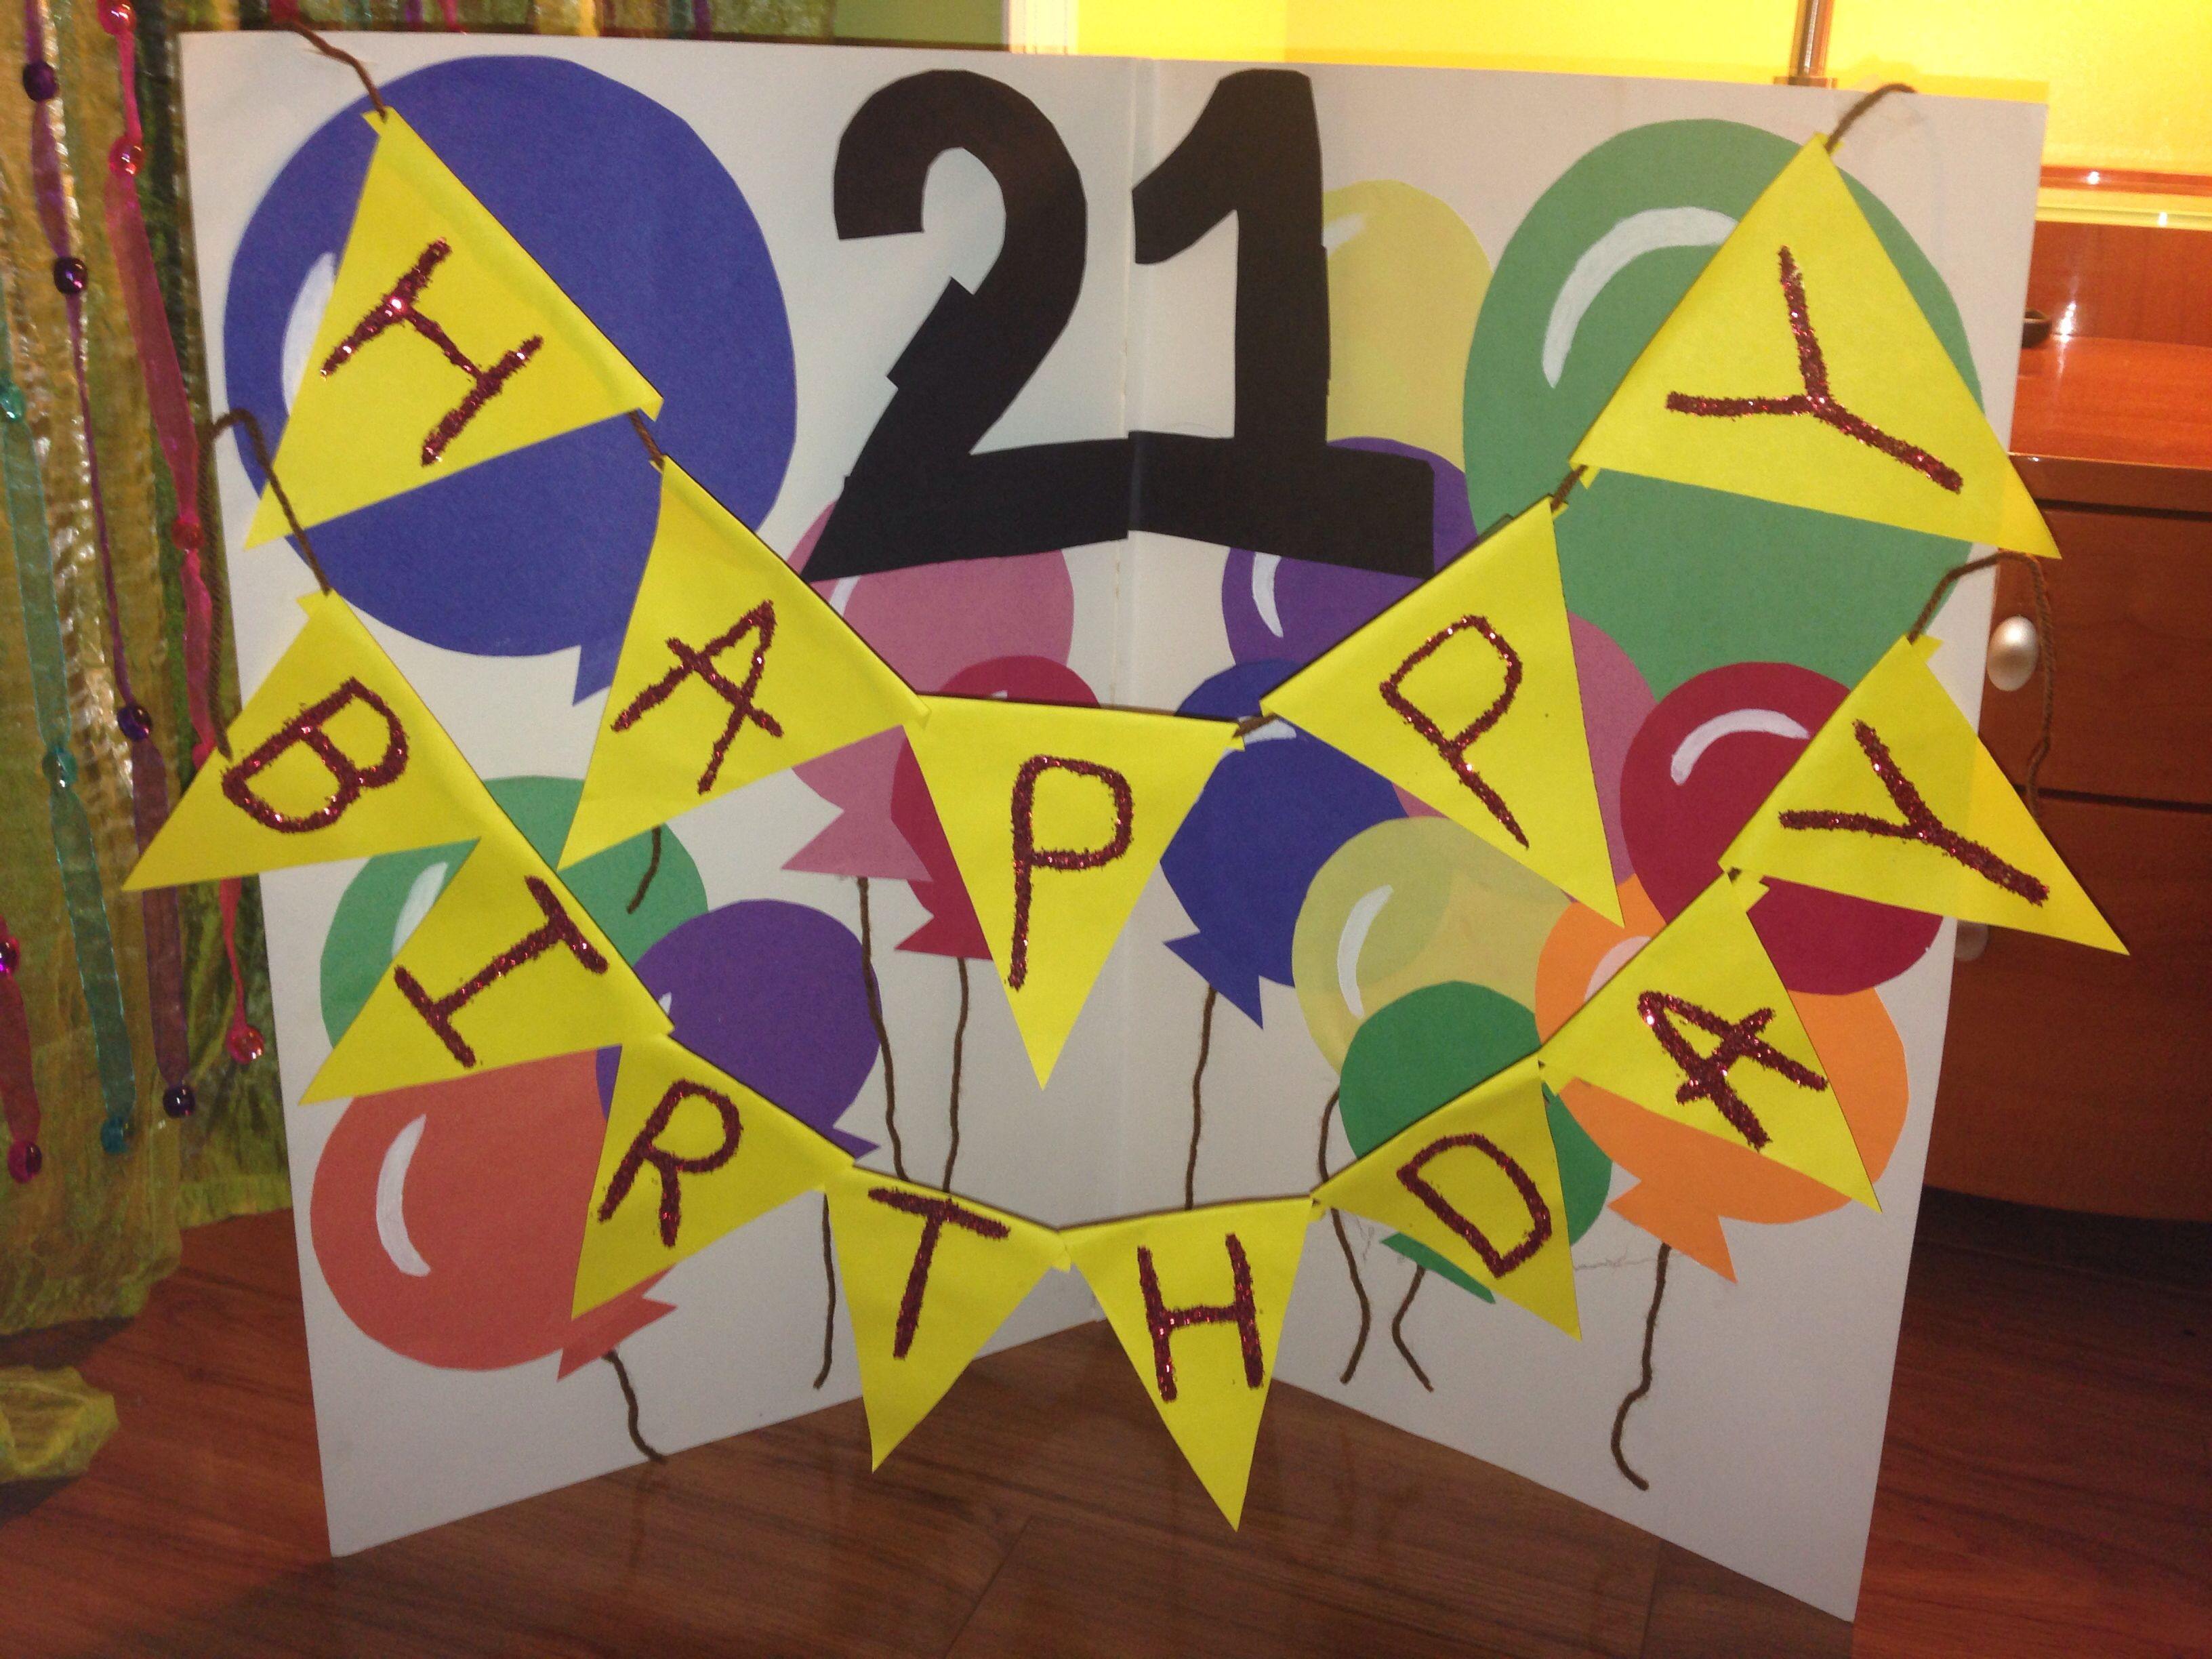 Made This For My Boyfriends 21st Birthday Cute Inexpensive Idea That Is Creative And Loving Giant Card Ha Giant Card 18th Birthday Gifts Cards Handmade